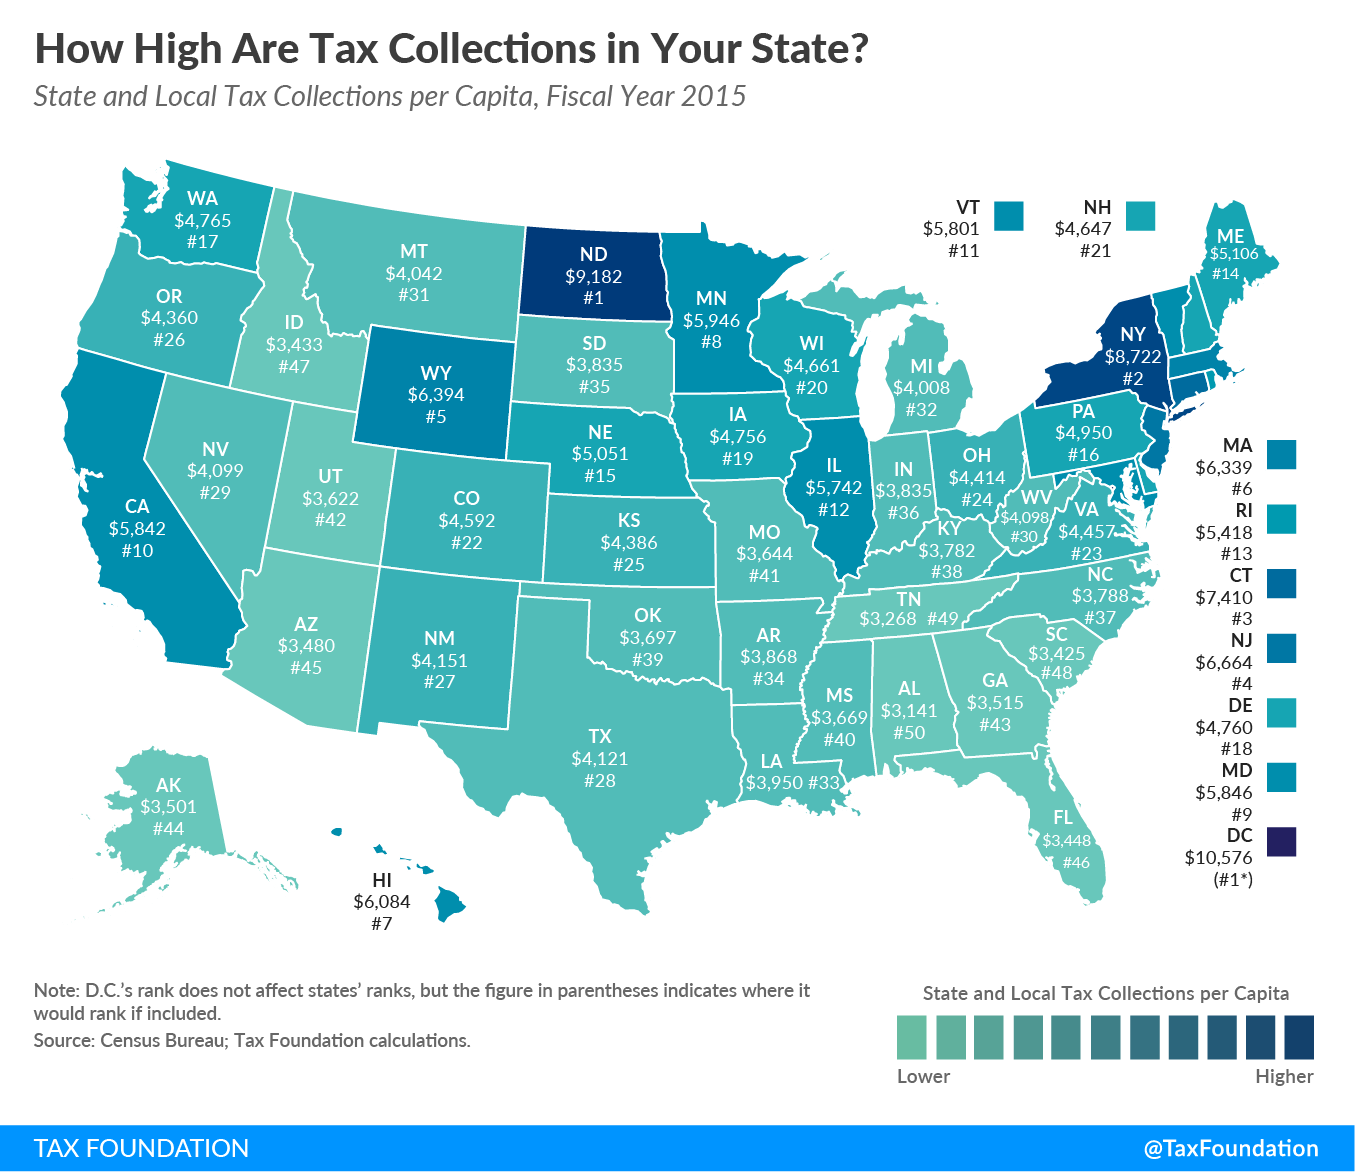 How High Are State and Local Tax Collections in Your State?